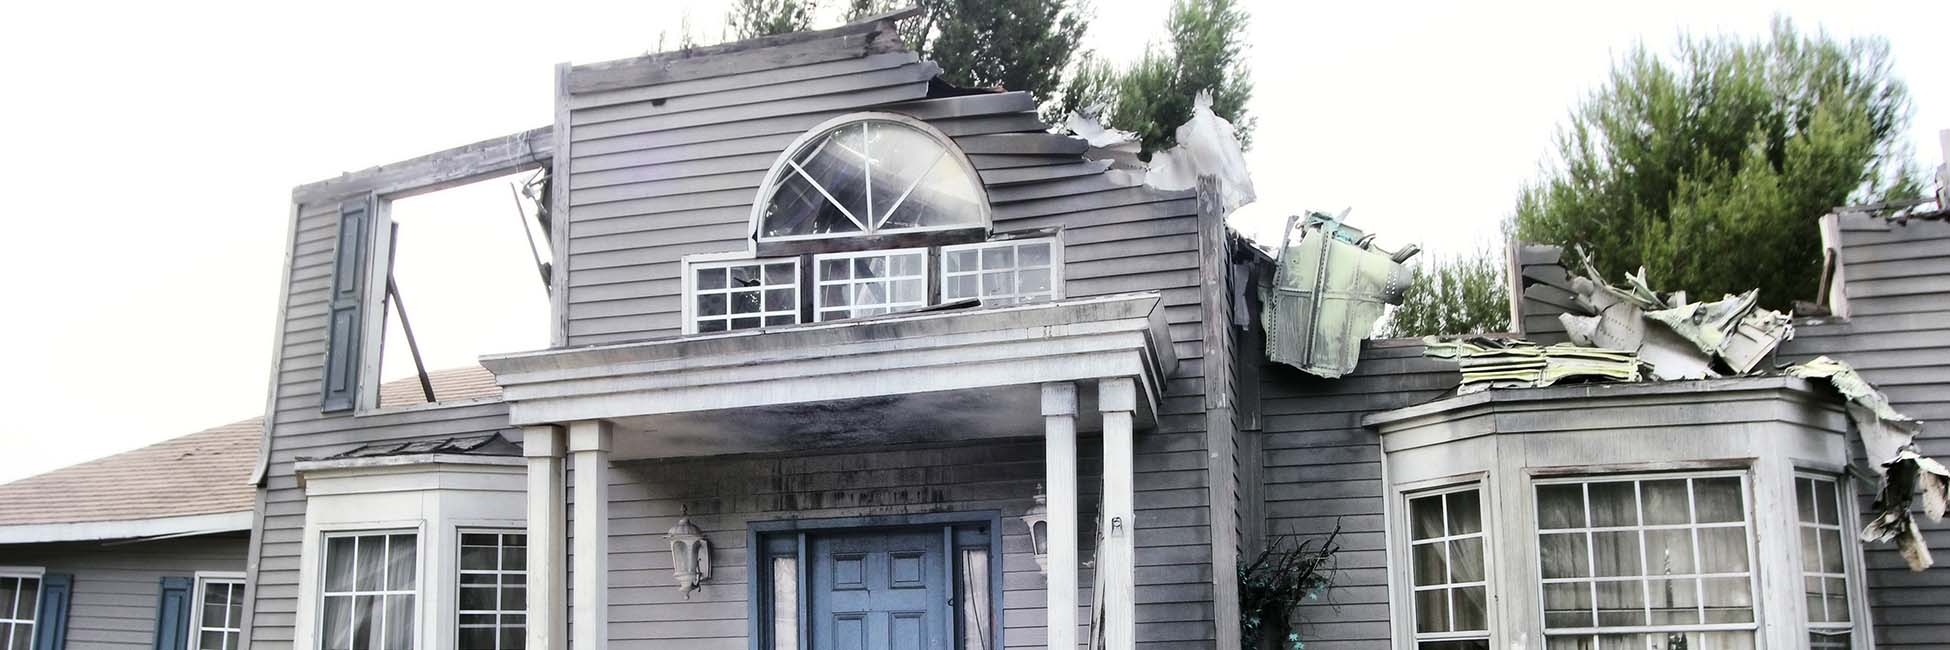 Hurricane and Windstorm Damage Claims Adjuster